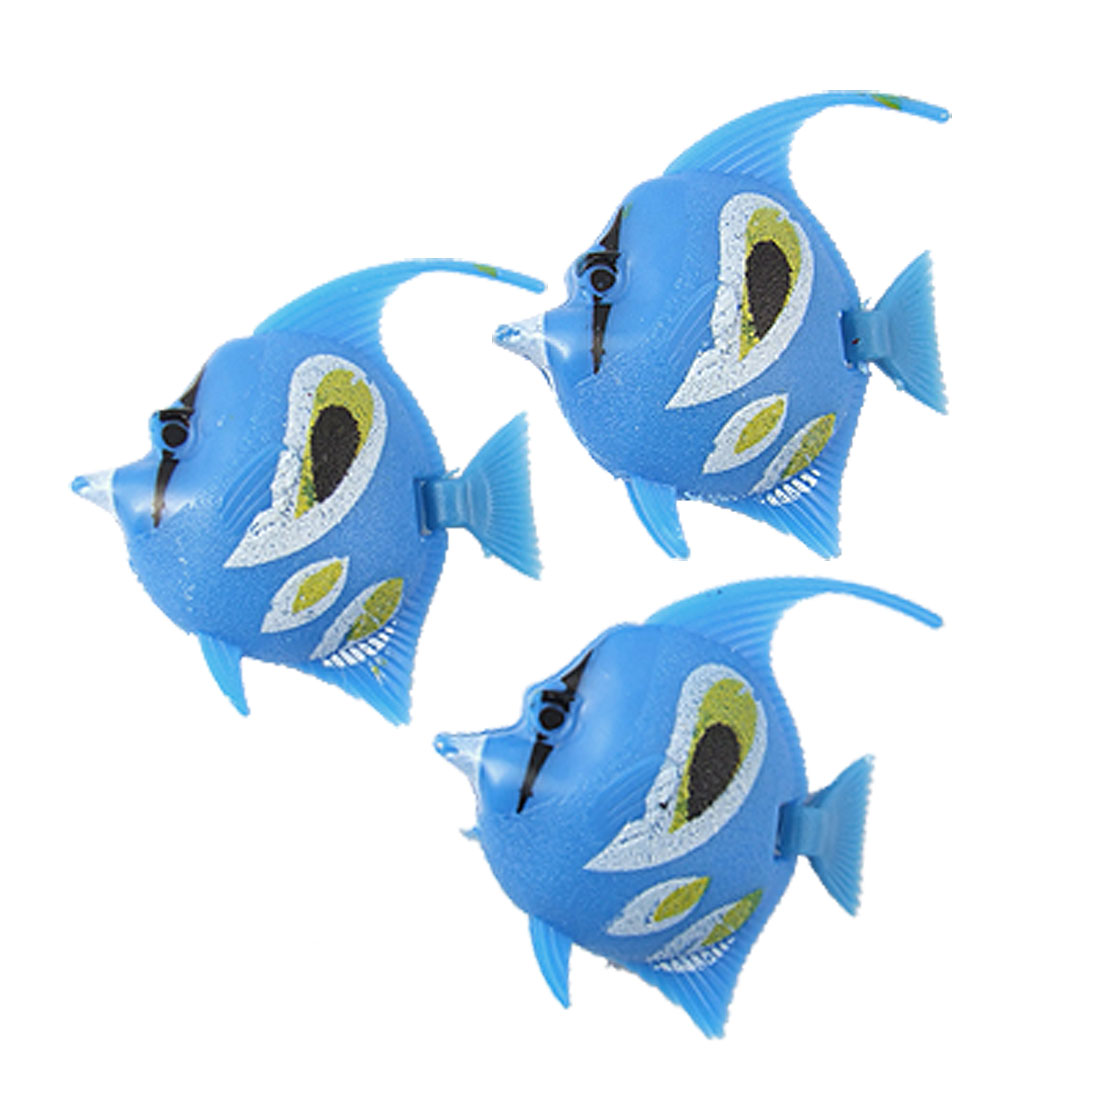 3 Pcs Blue Plastic Floating Fish Decoration for Aquarium